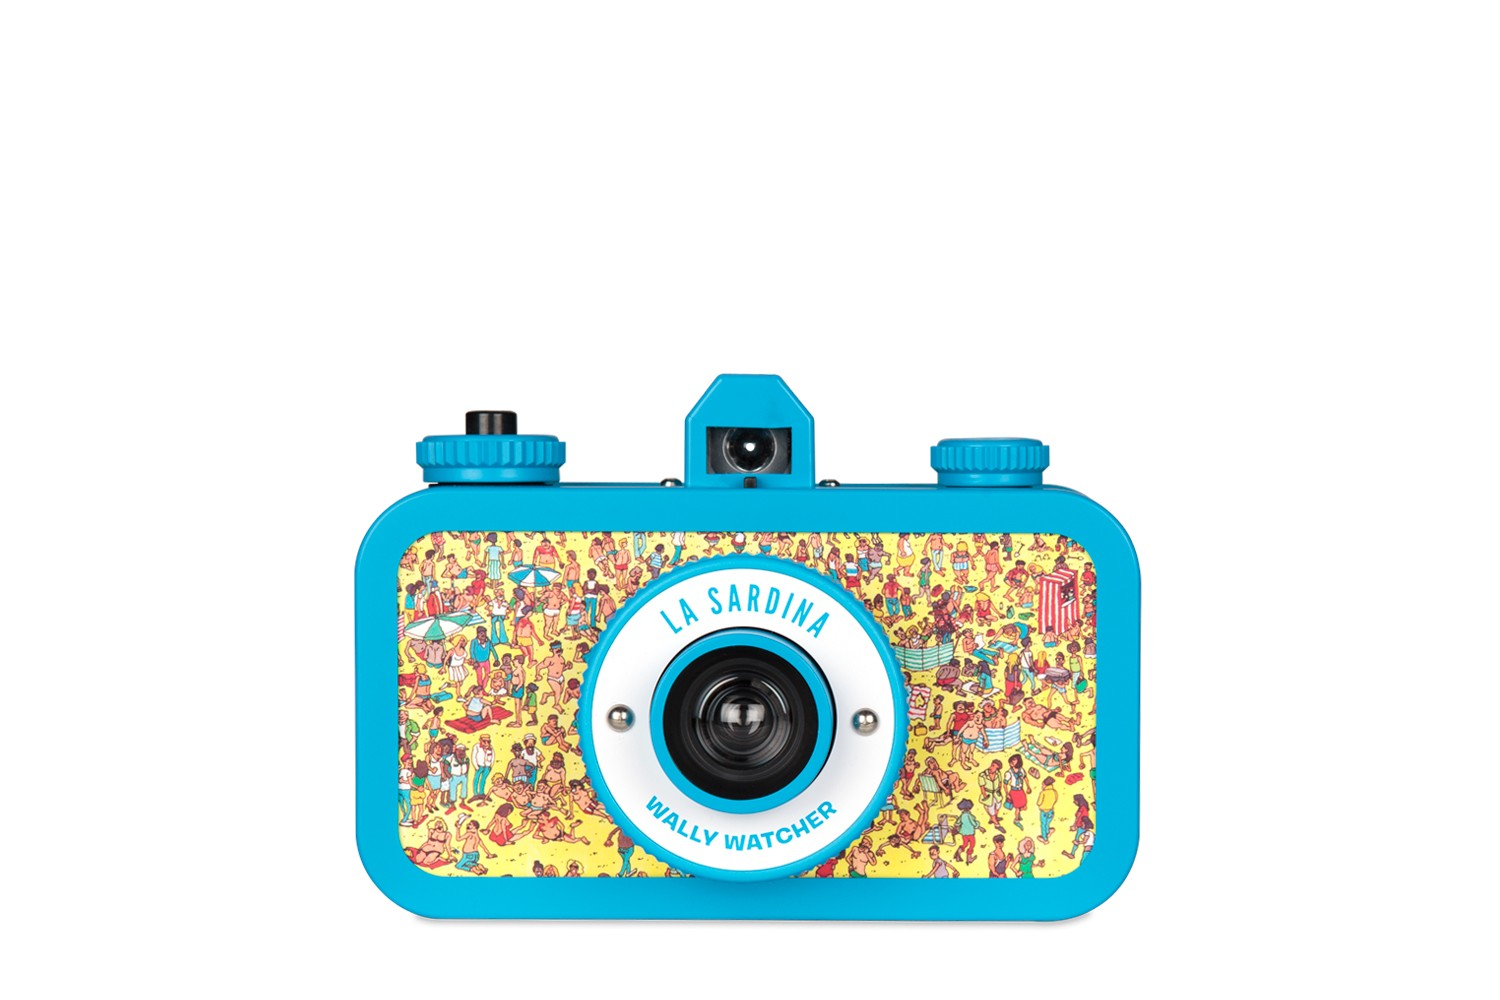 La Sardina Wally Watcher